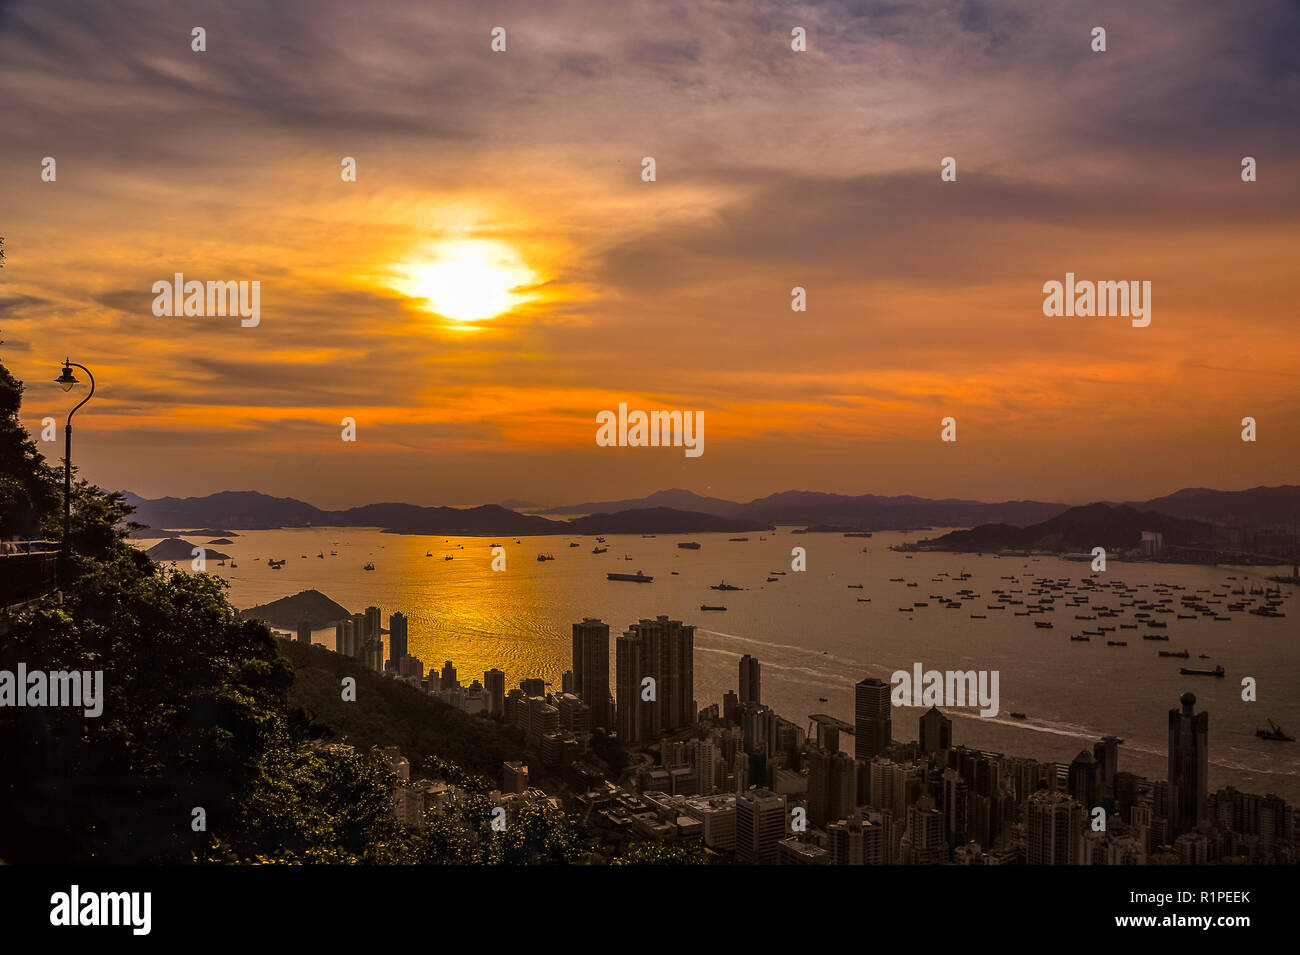 Sunset over Hong Kong harbour from Lugard Lookout, Victoria Peak. Dazzling orange sun sets over distant islands with city highrises in the foreground. - Stock Image